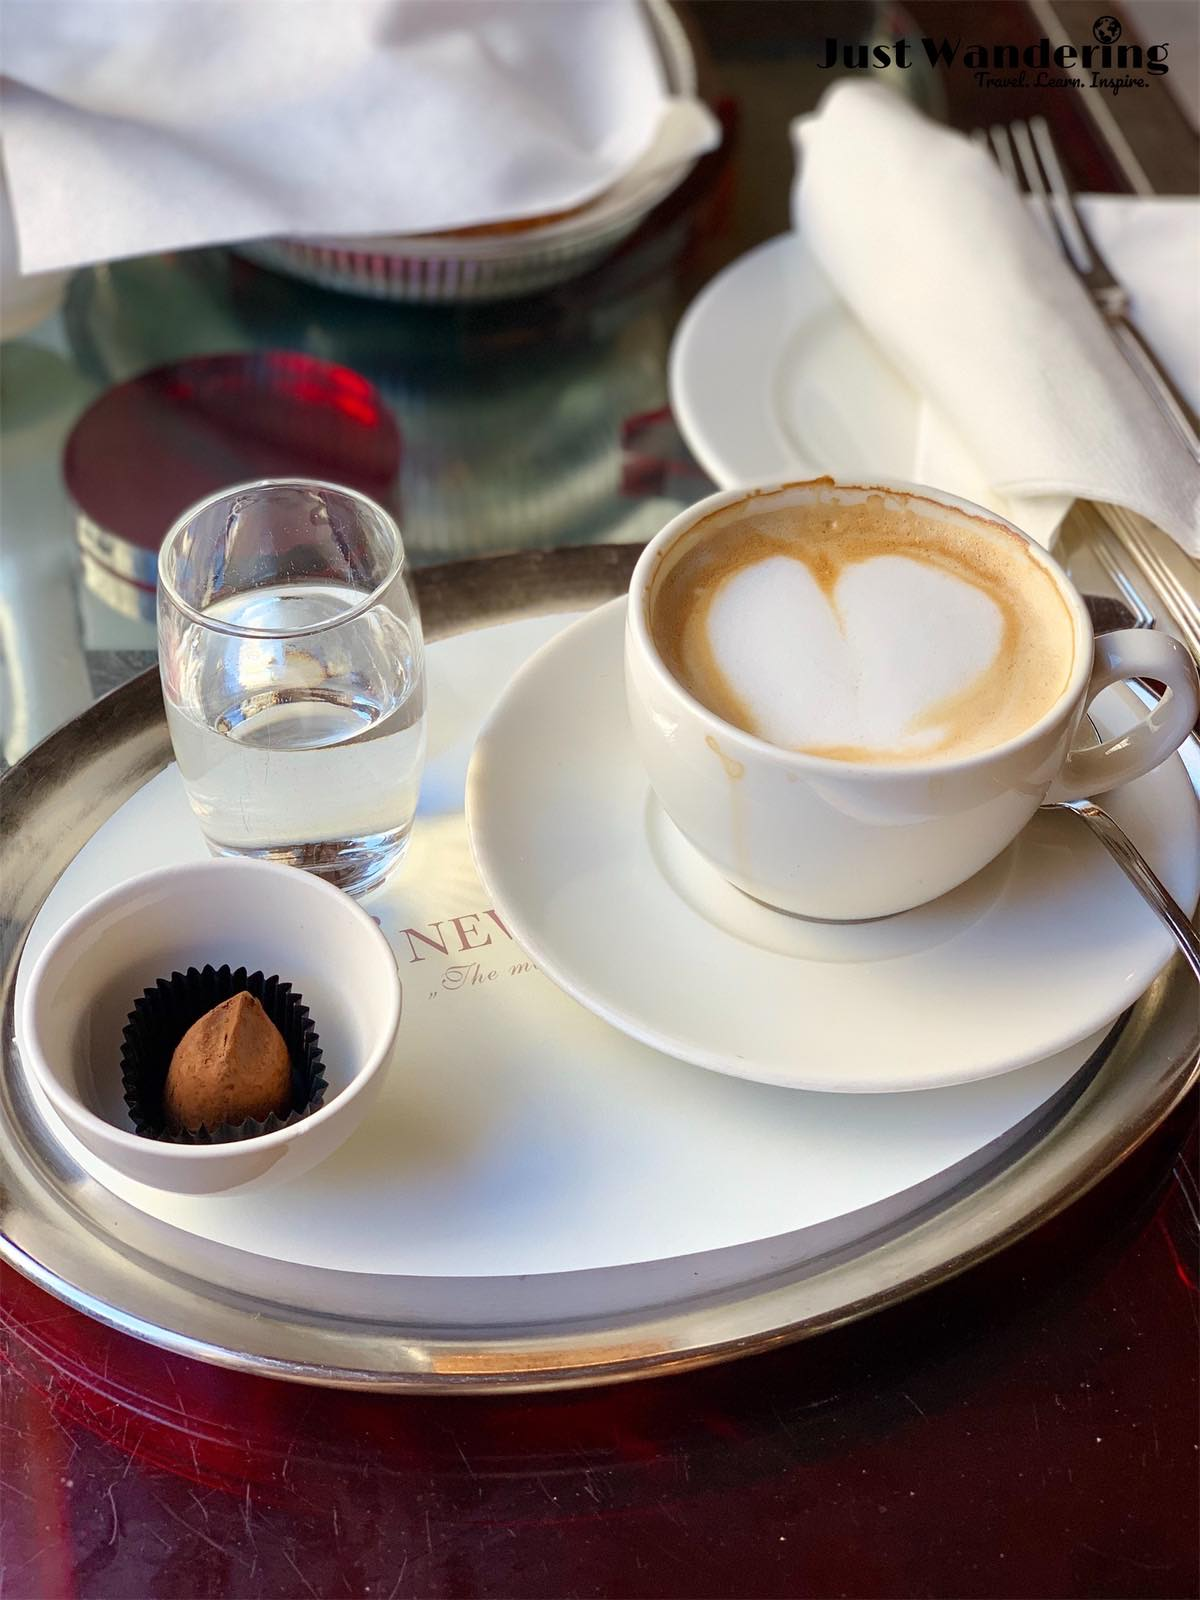 - I sampled a selection of items from the breakfast menu. Left: cappuccino, served with a glass of water and a truffle.